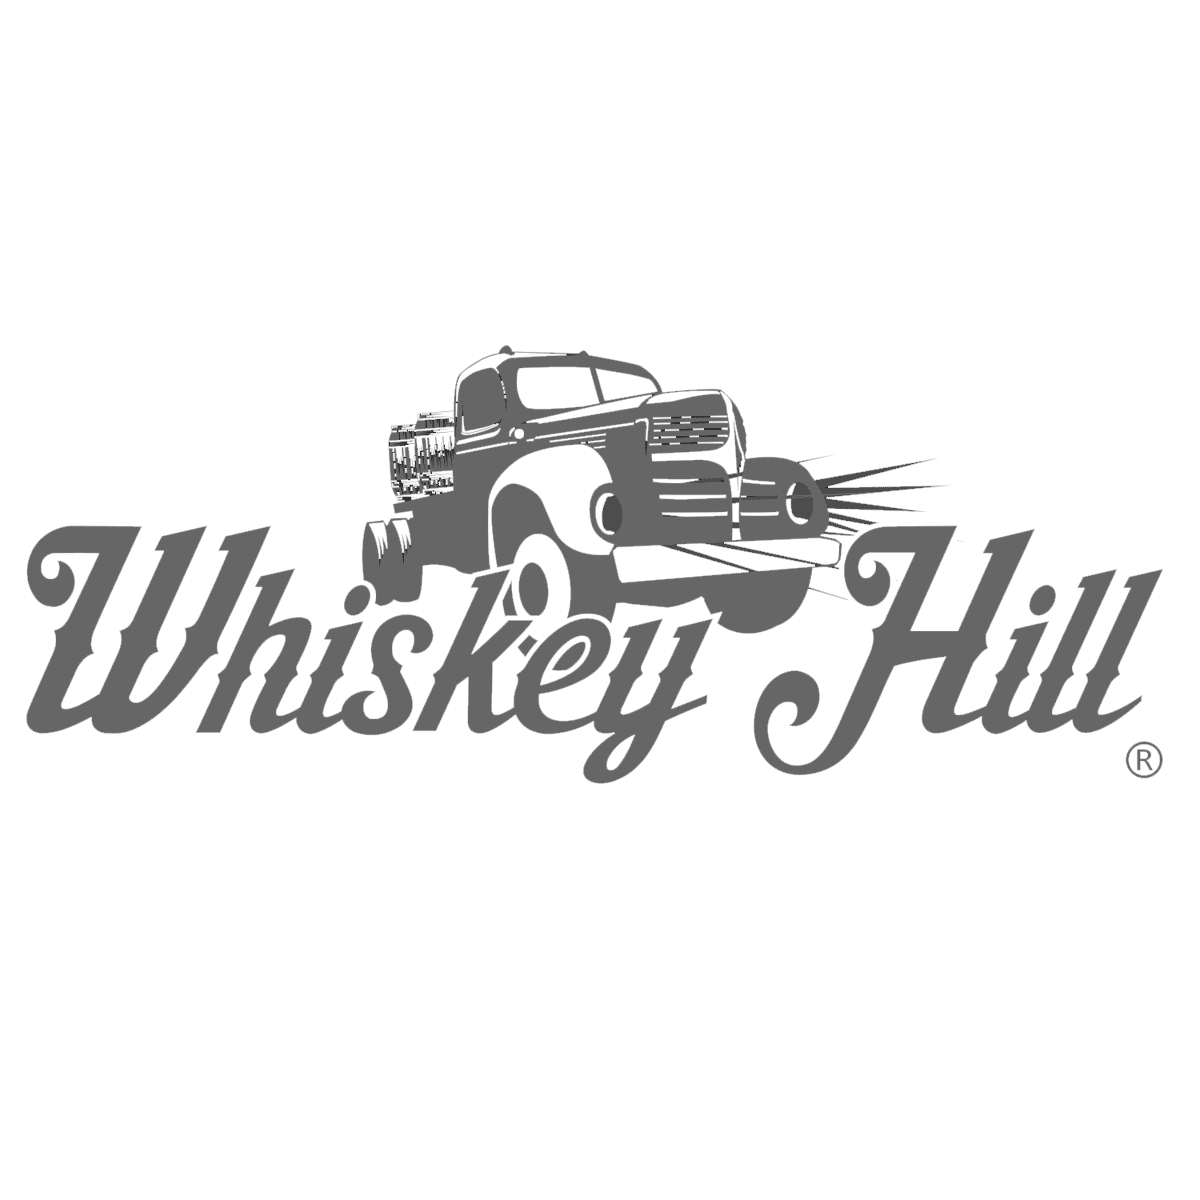 whiskey hill brewing logo